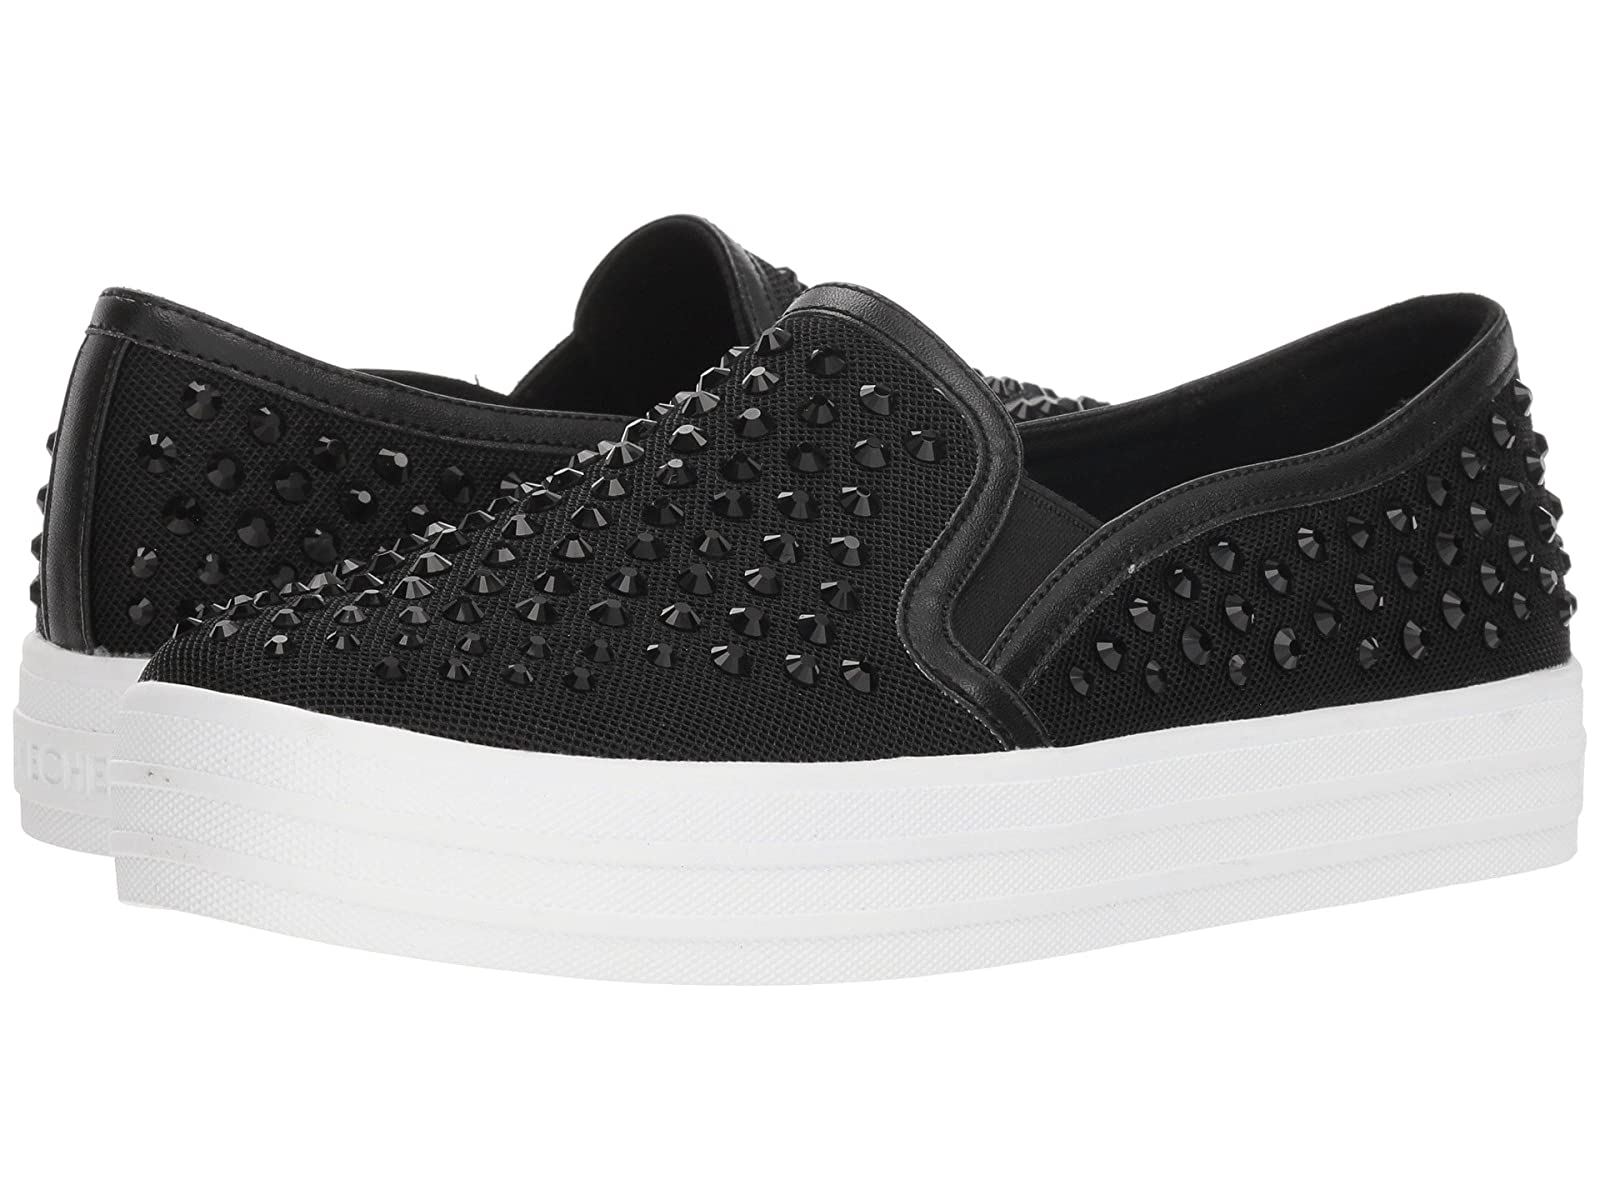 SKECHERS Double Up - Rhine-StepAtmospheric grades have affordable shoes